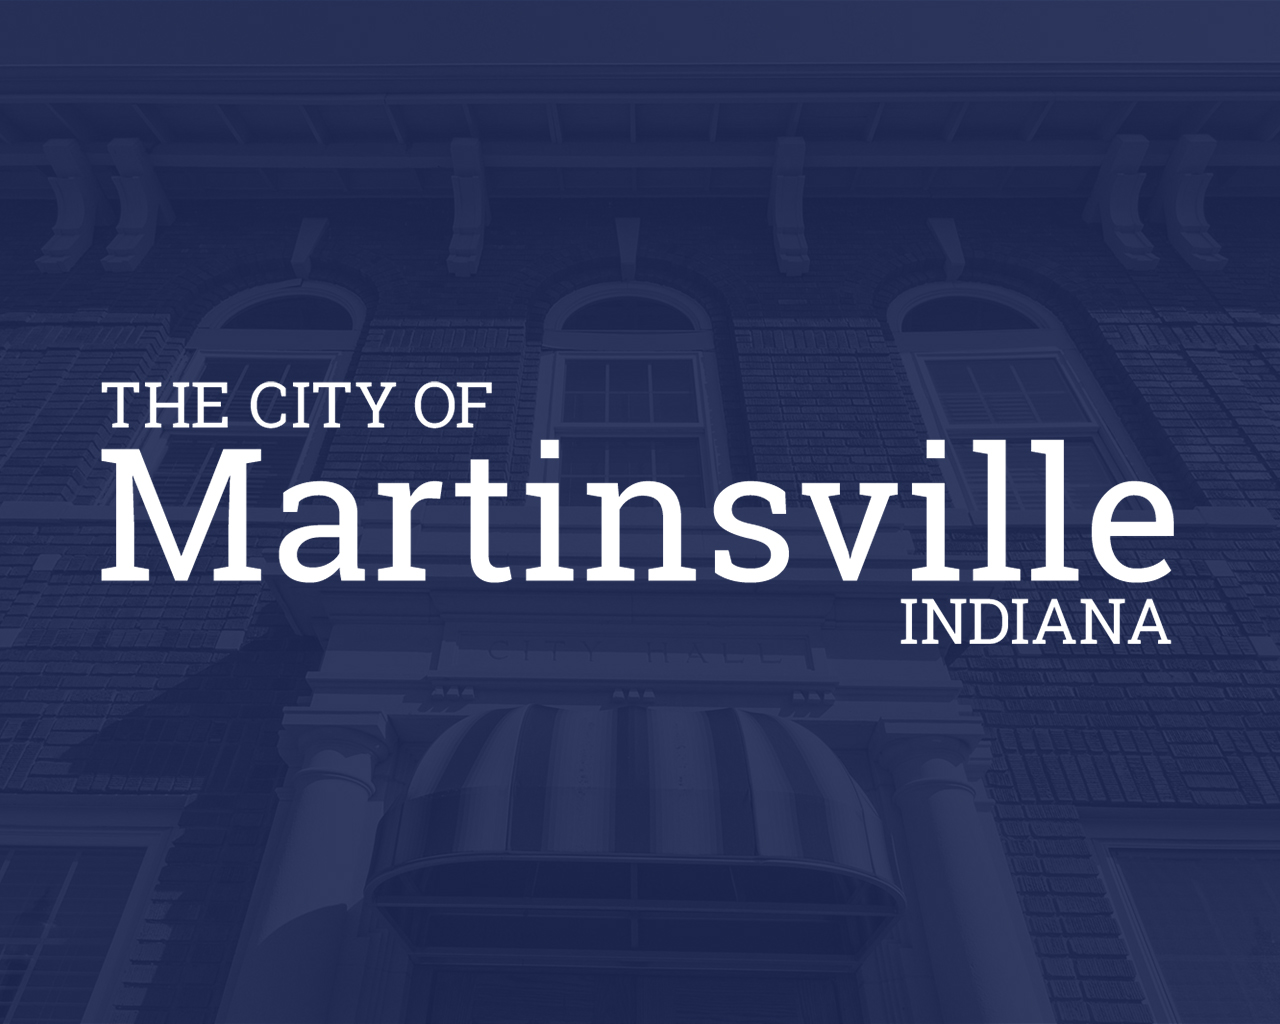 Building Services - City of Martinsville, Indiana